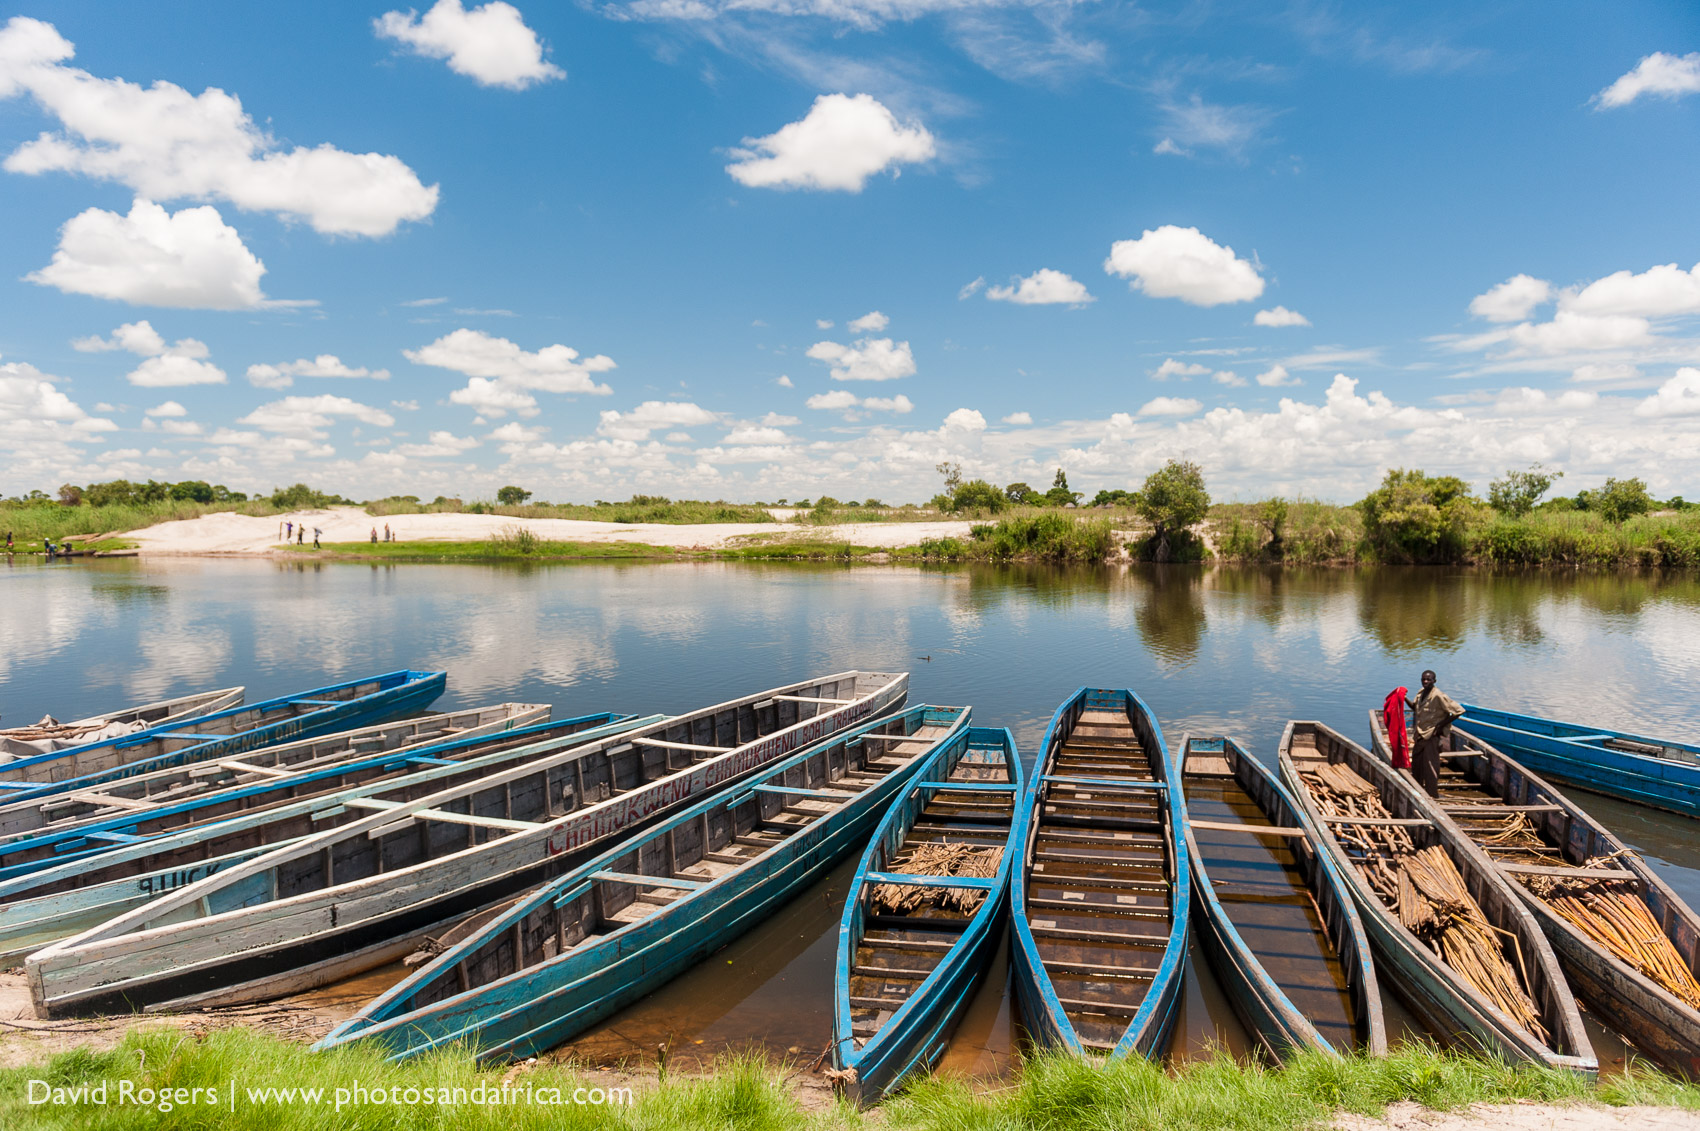 Zambia, Liuwa Plains National Park, view of fishing boats on the Luanginga River at the gateway to the park at Kalabo